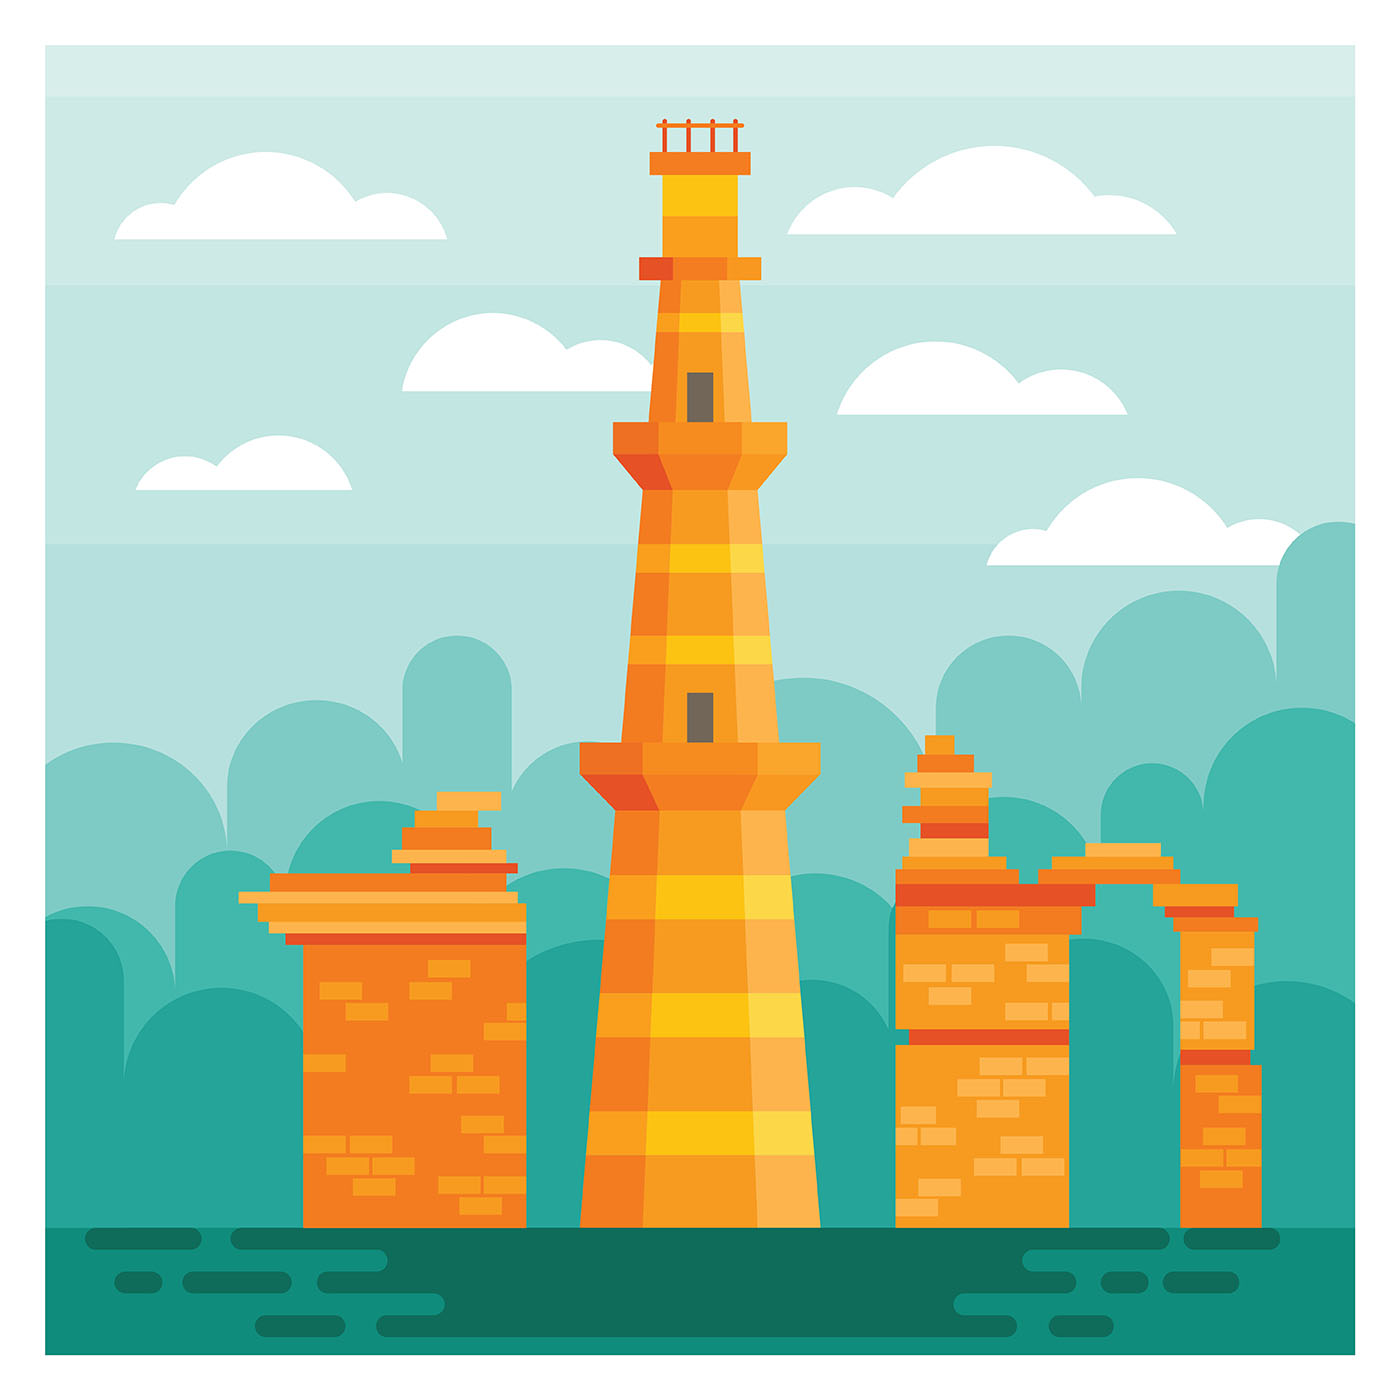 Qutab minar clipart image black and white stock Qutubminar Free Vector Art - (15 Free Downloads) image black and white stock